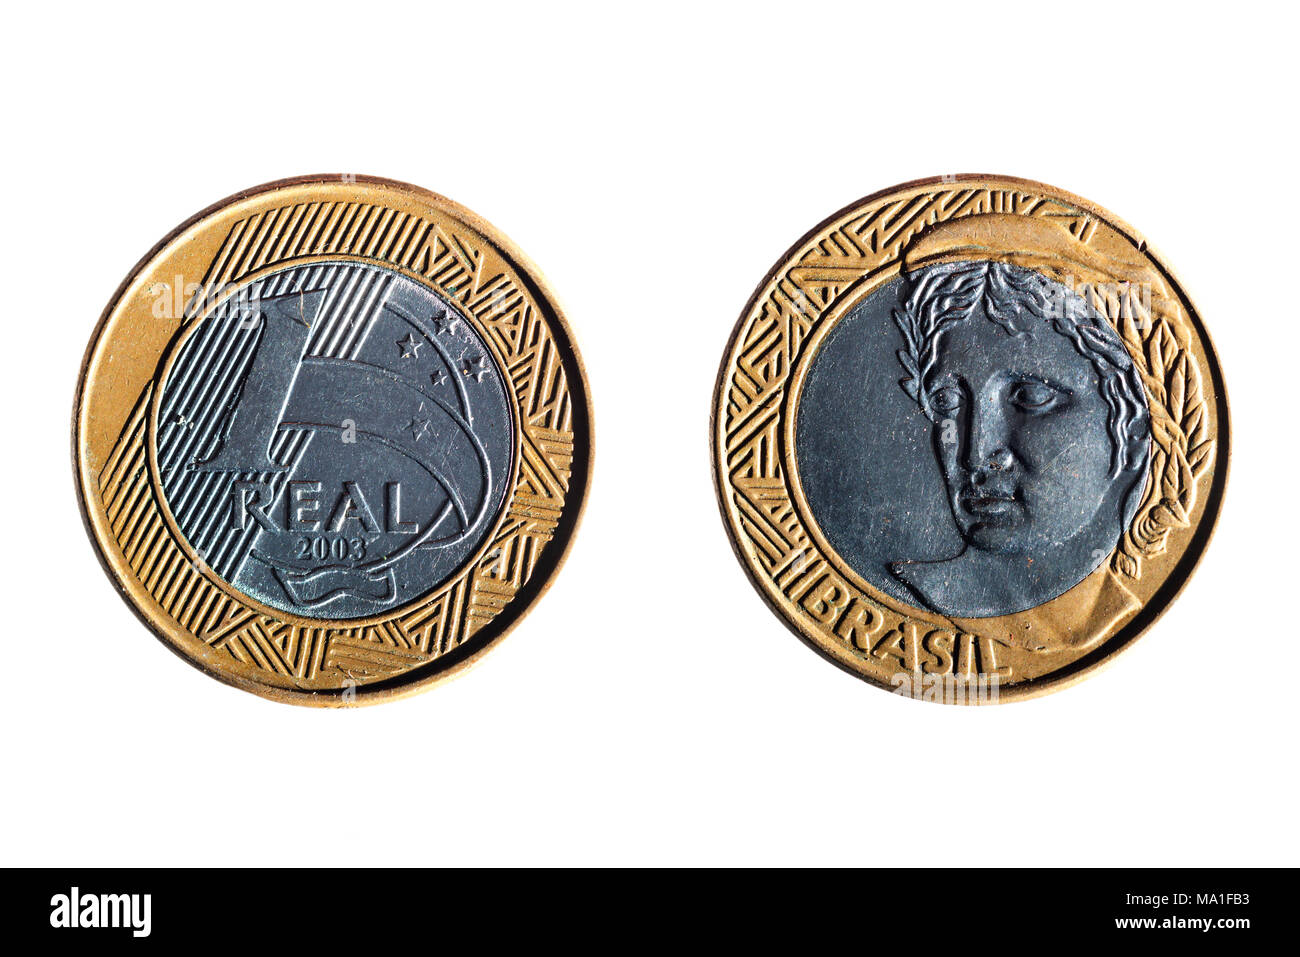 Real brazil currency symbol icon stock photos real brazil currency front and back of a brazilian real coin on white background stock image buycottarizona Images